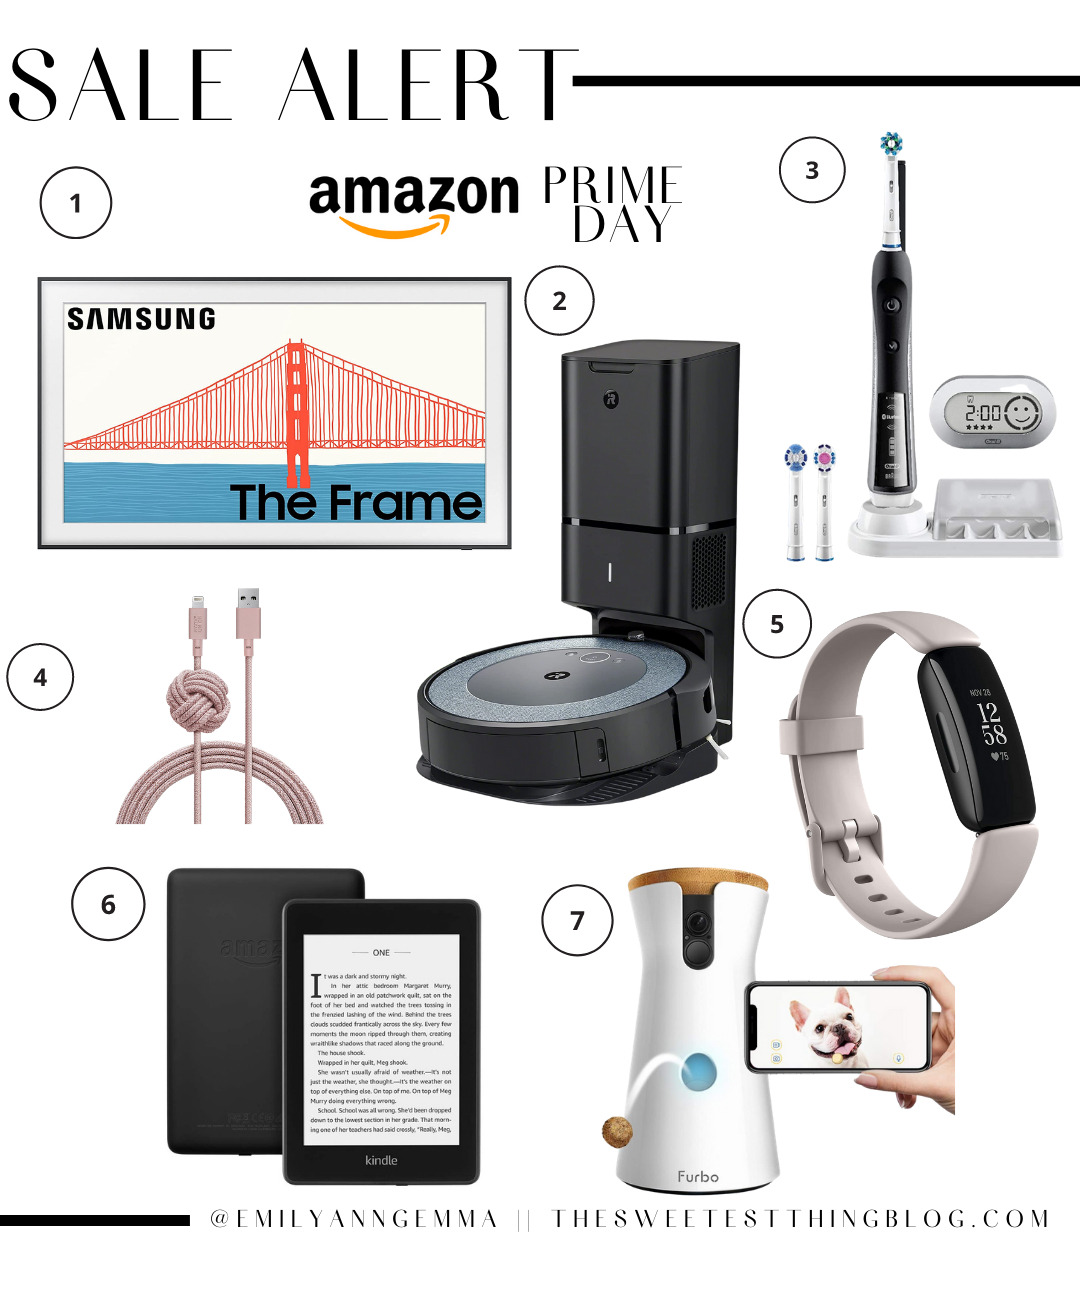 Amazon Prime Day by popular US life and Style blog, The Sweetest Thing: collage image of a Samsung the frame t.v., fit bit, electric toothbrush, charging cord, Furbo treat feeder, Kindle, and Roomba vacuum.